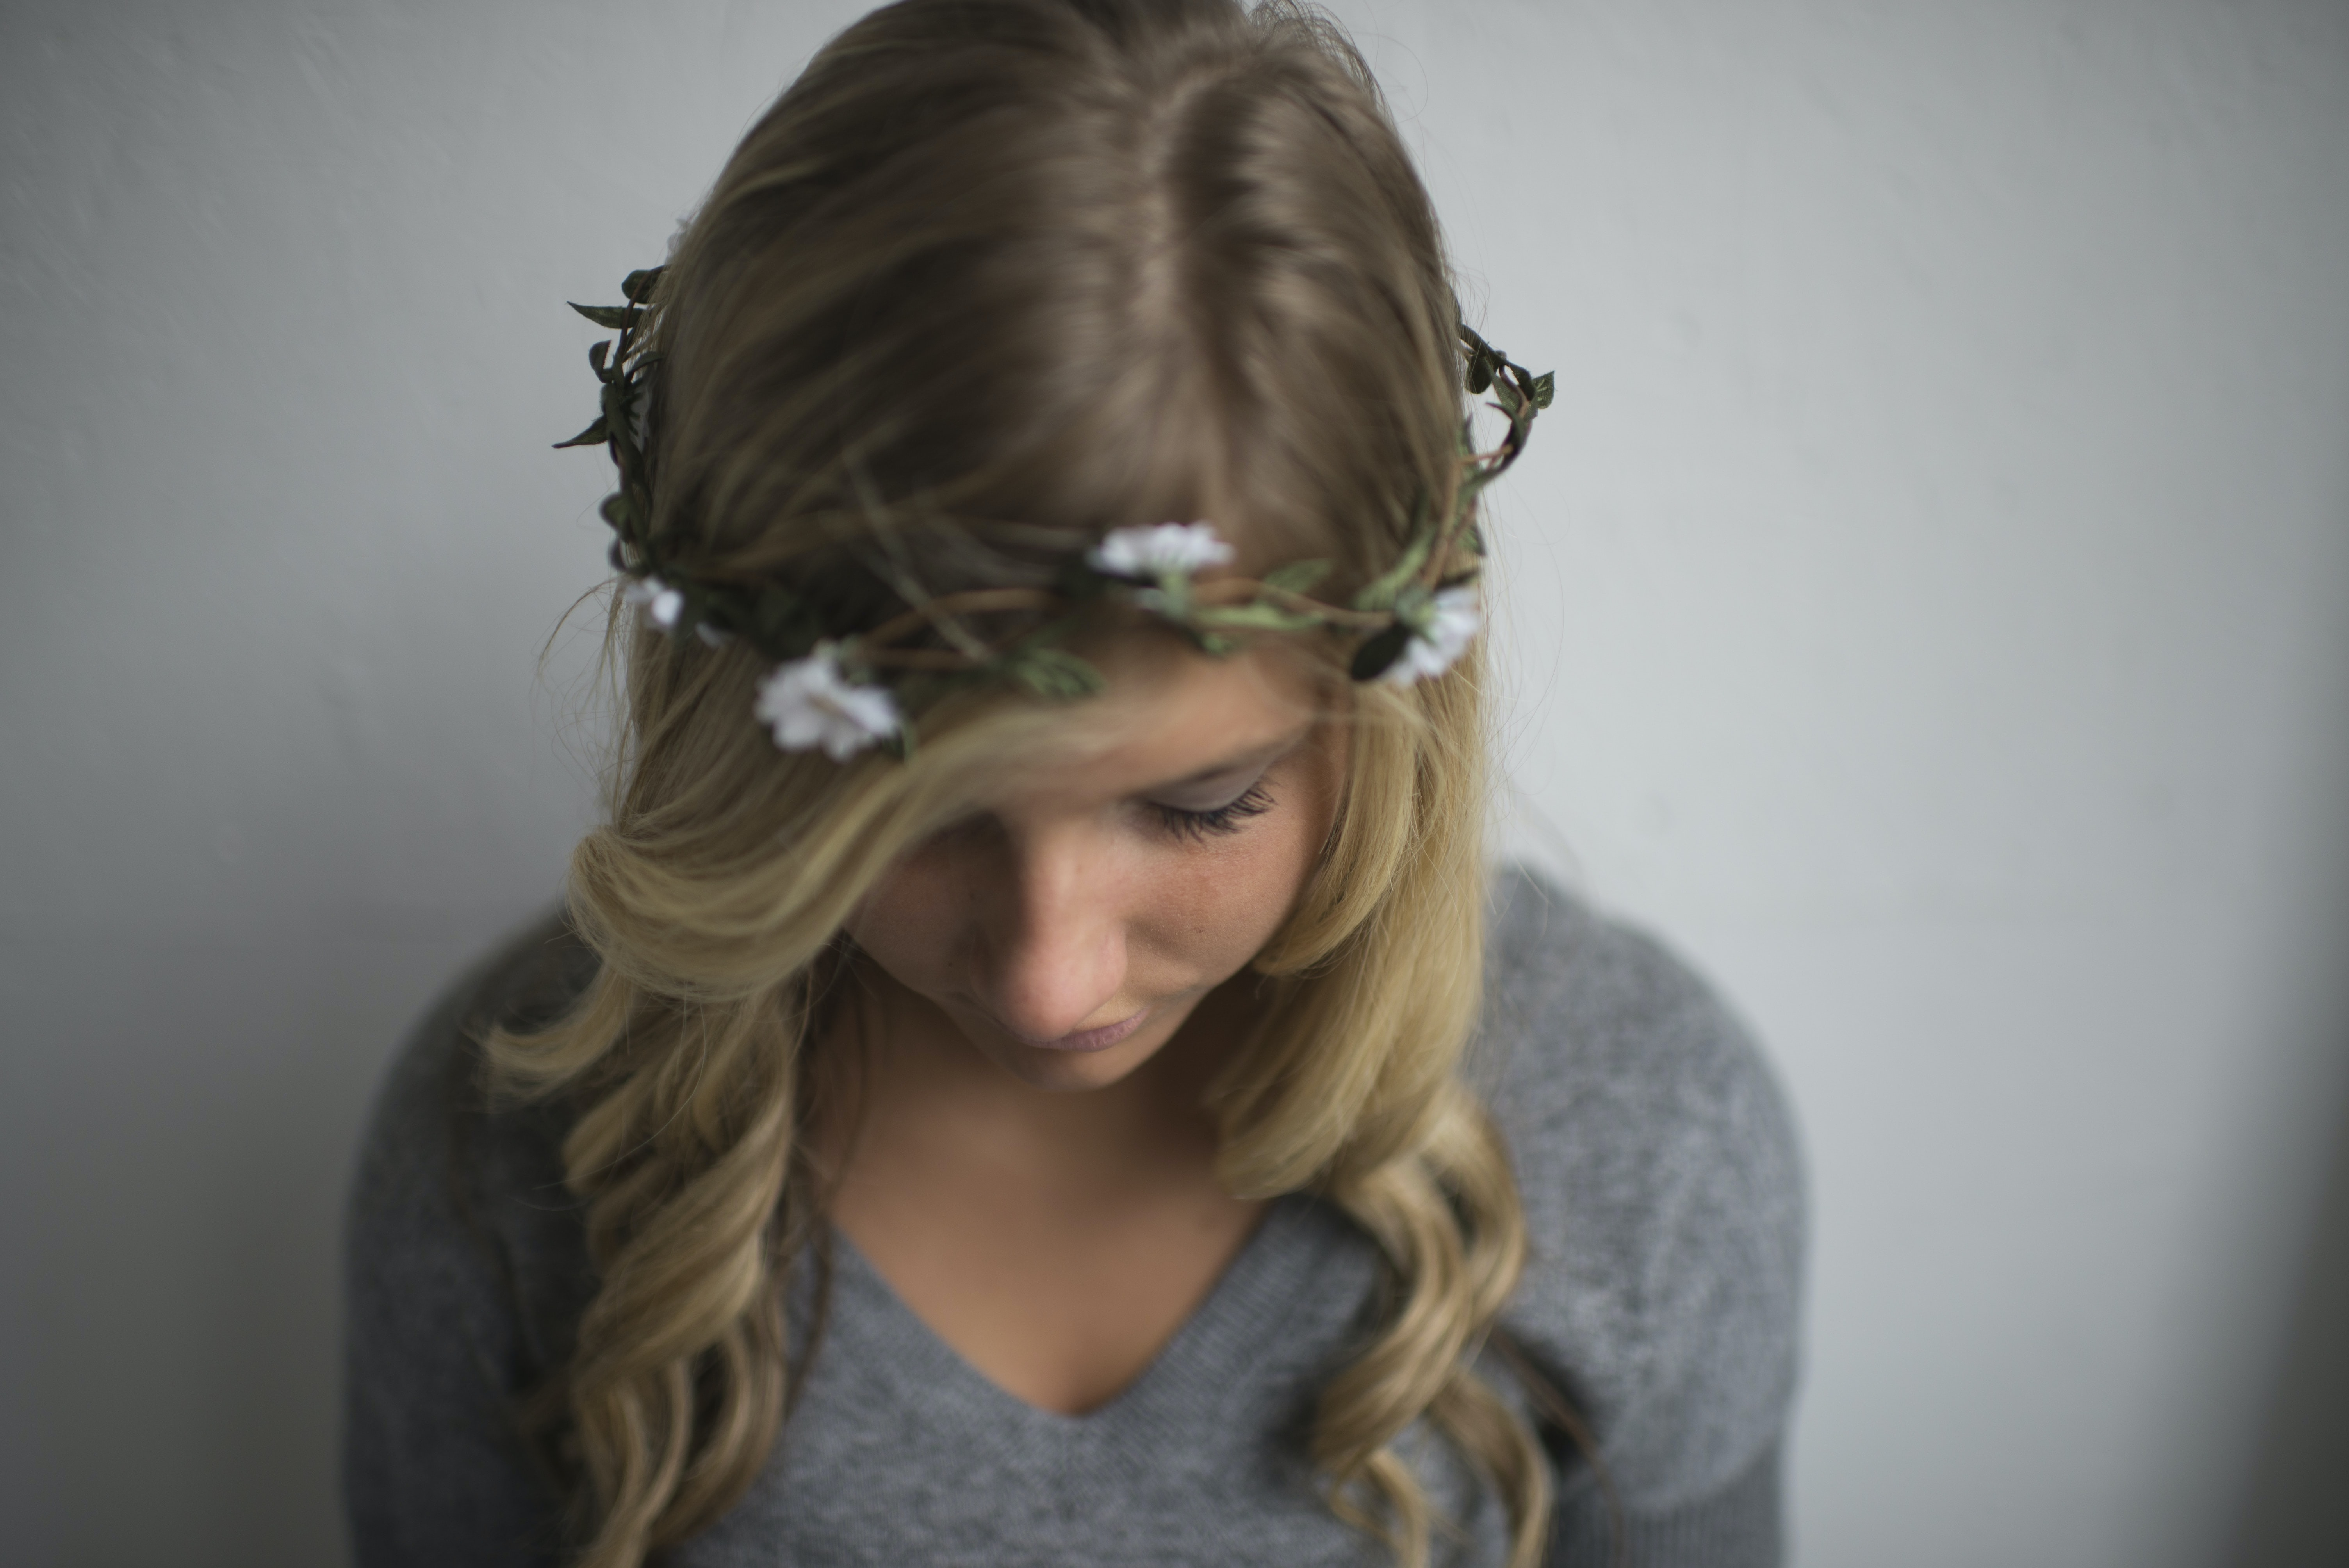 A blonde woman in a headband made of white flowers